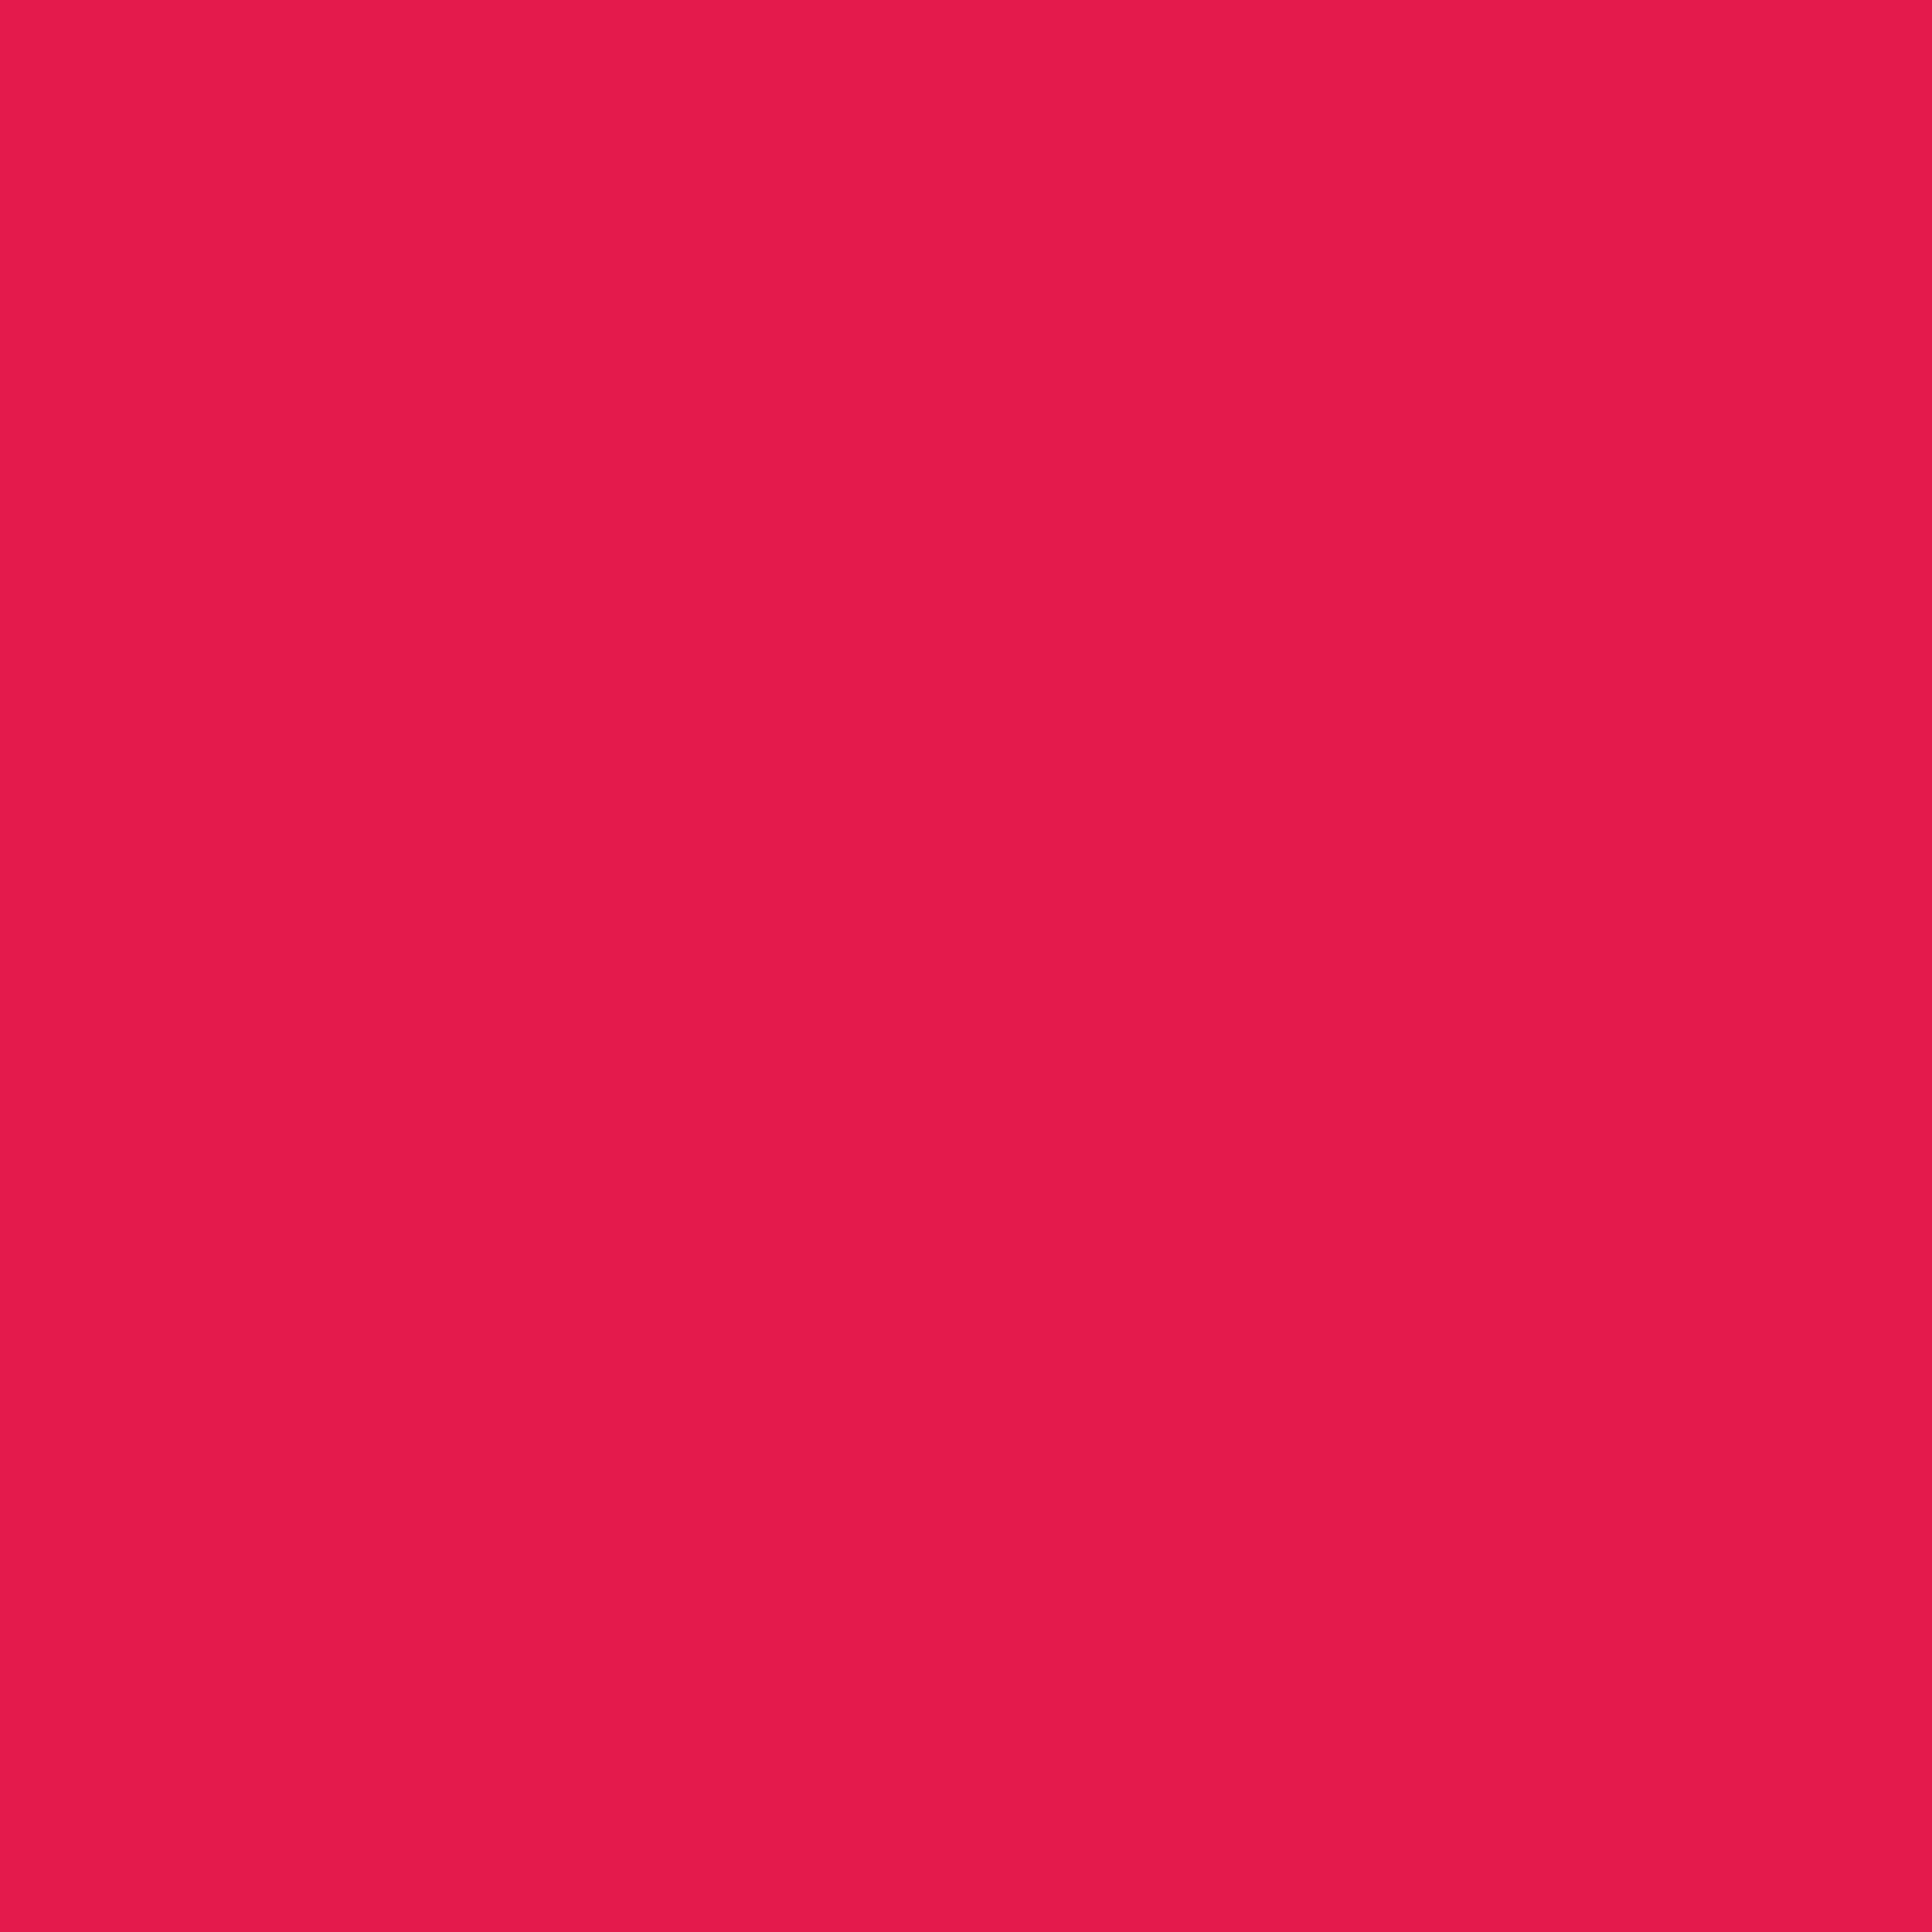 3600x3600 Spanish Crimson Solid Color Background